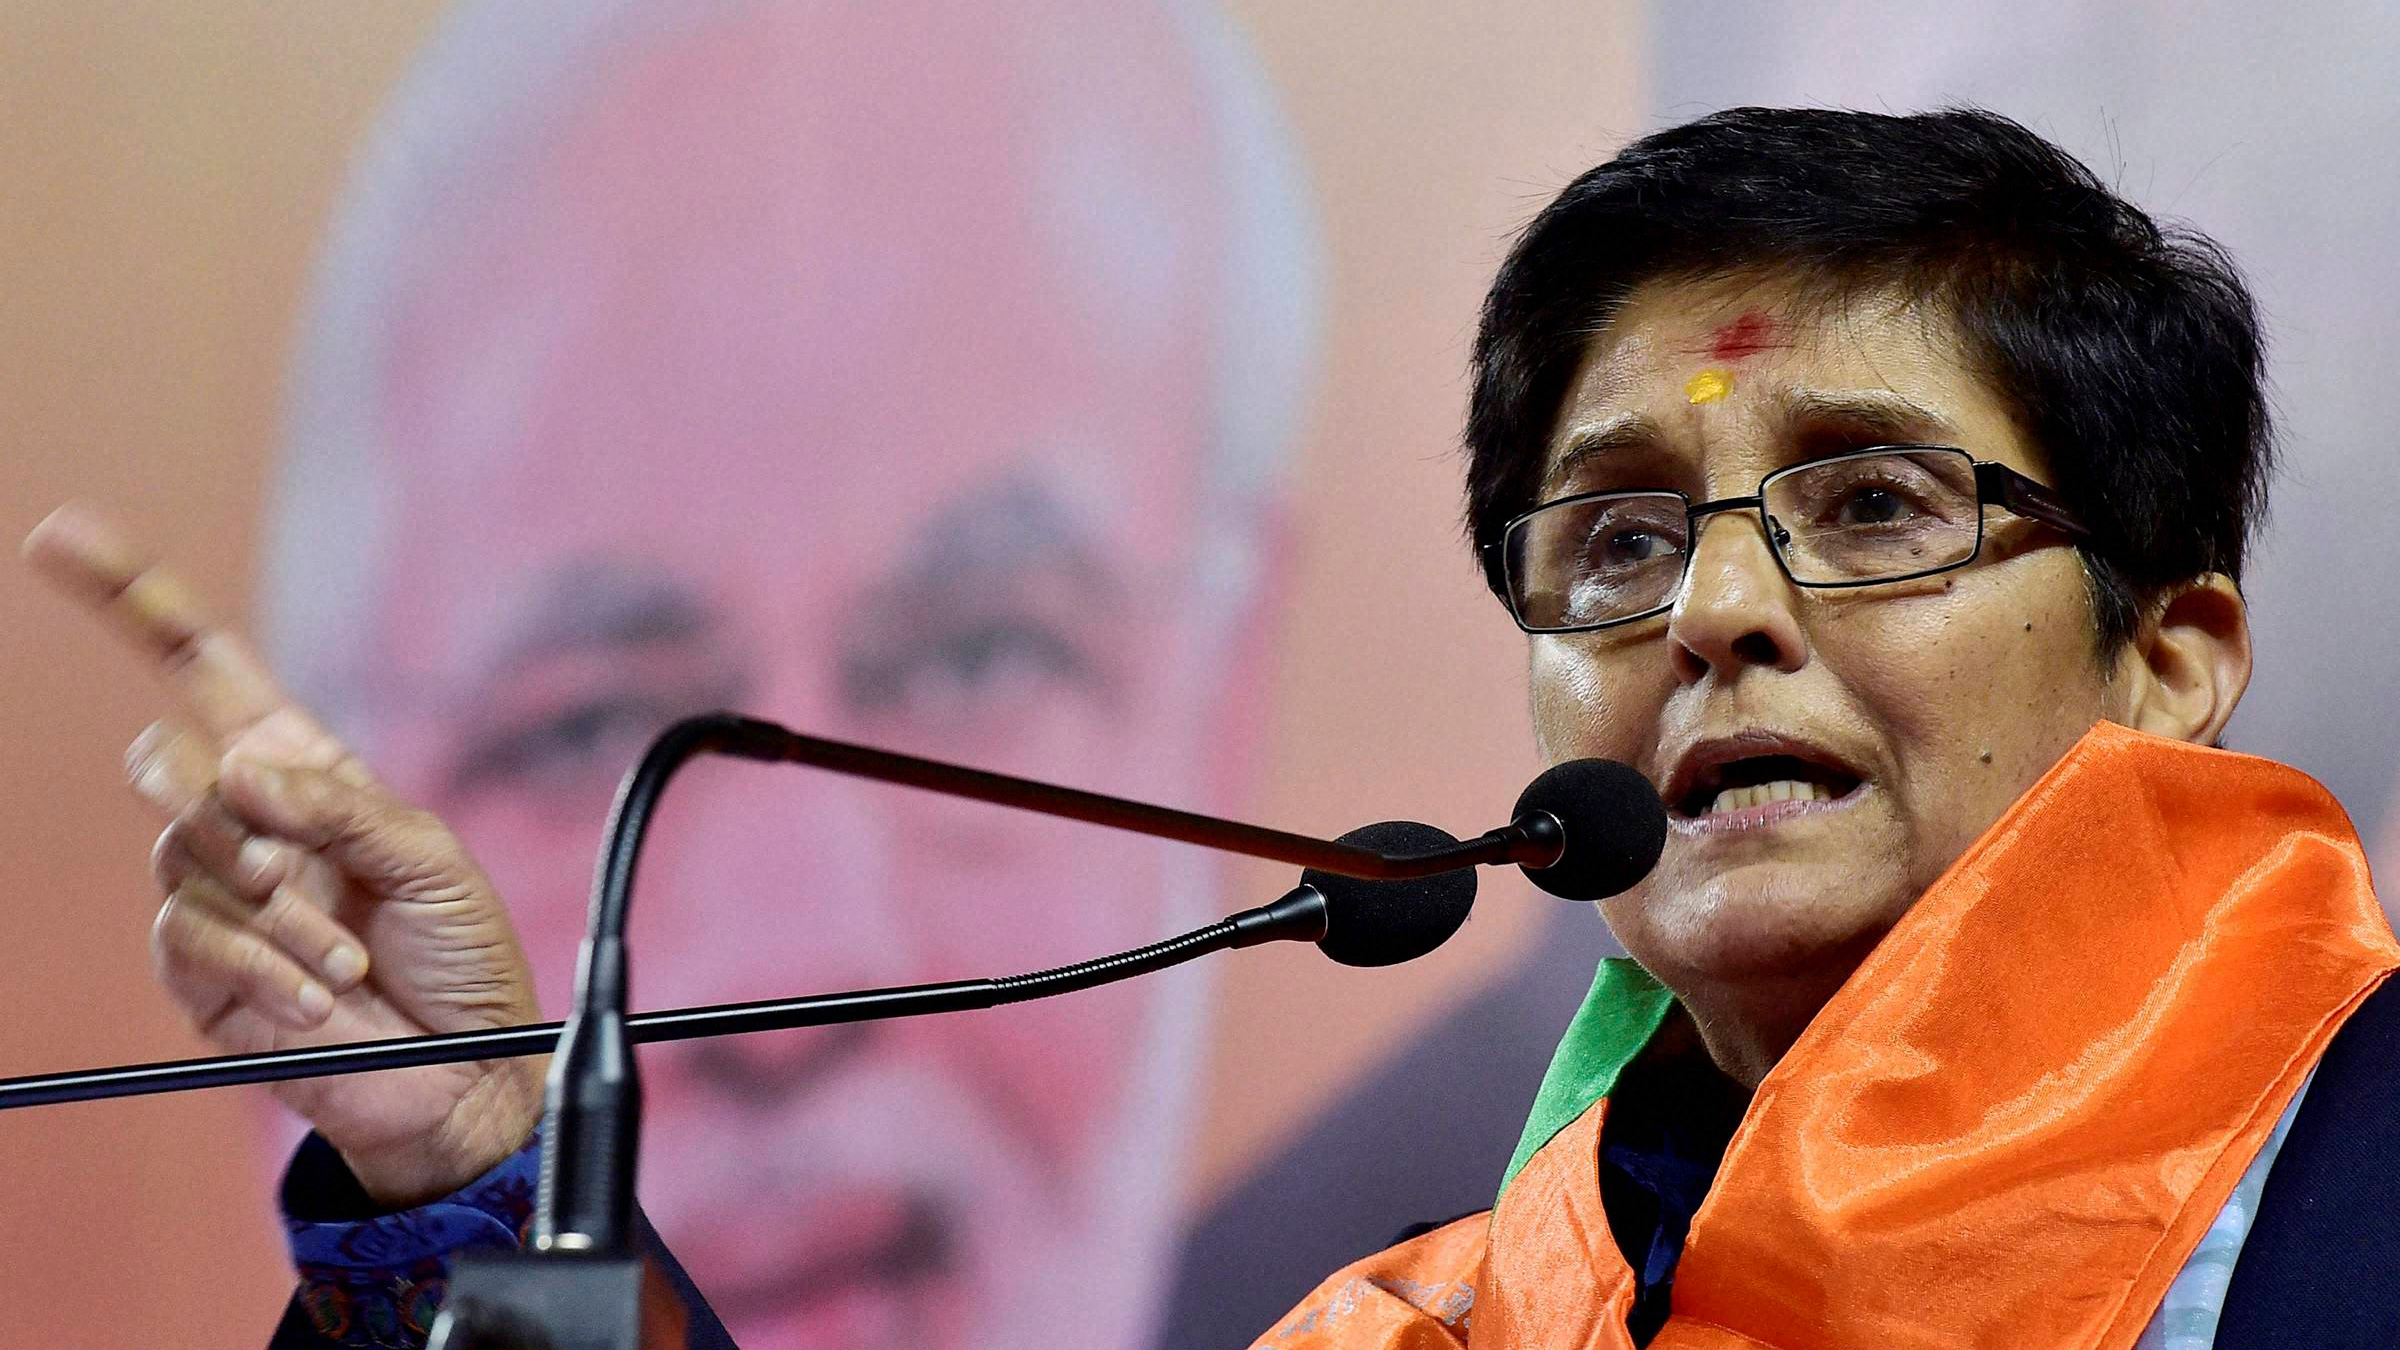 Kiran Bedi's Sudden Removal As Lieutenant Governor Smacks of Arbitrariness - The Wire